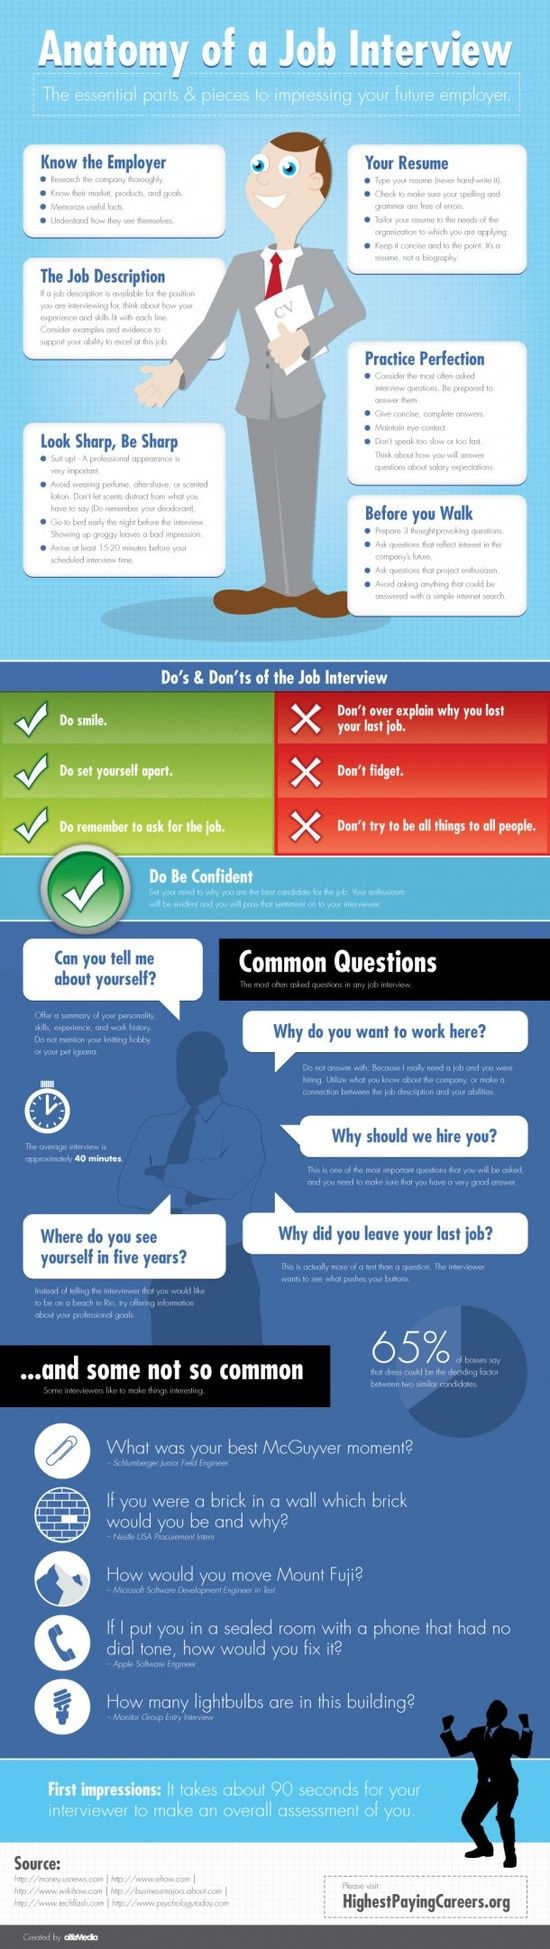 Job interviews can be extremely stressful, but don't sweat it! Check out these helpful tips and contact our office to schedule a mock interview. Preparedness and confidence is key in landing your dream job!